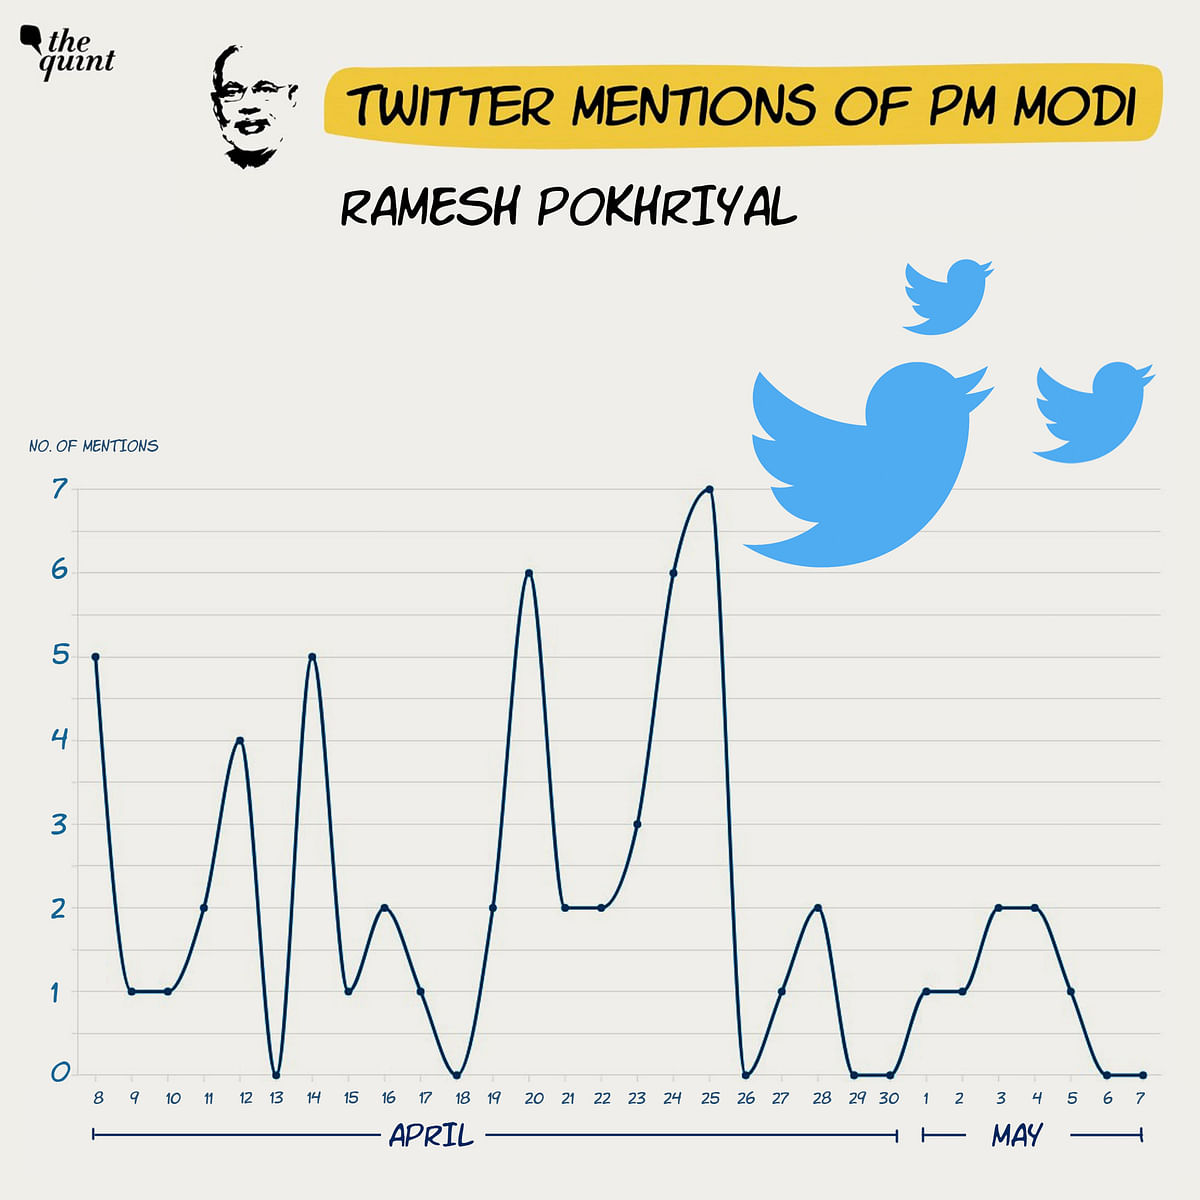 COVID Crisis: Is PM Modi Opting for Less Visibility on Twitter?